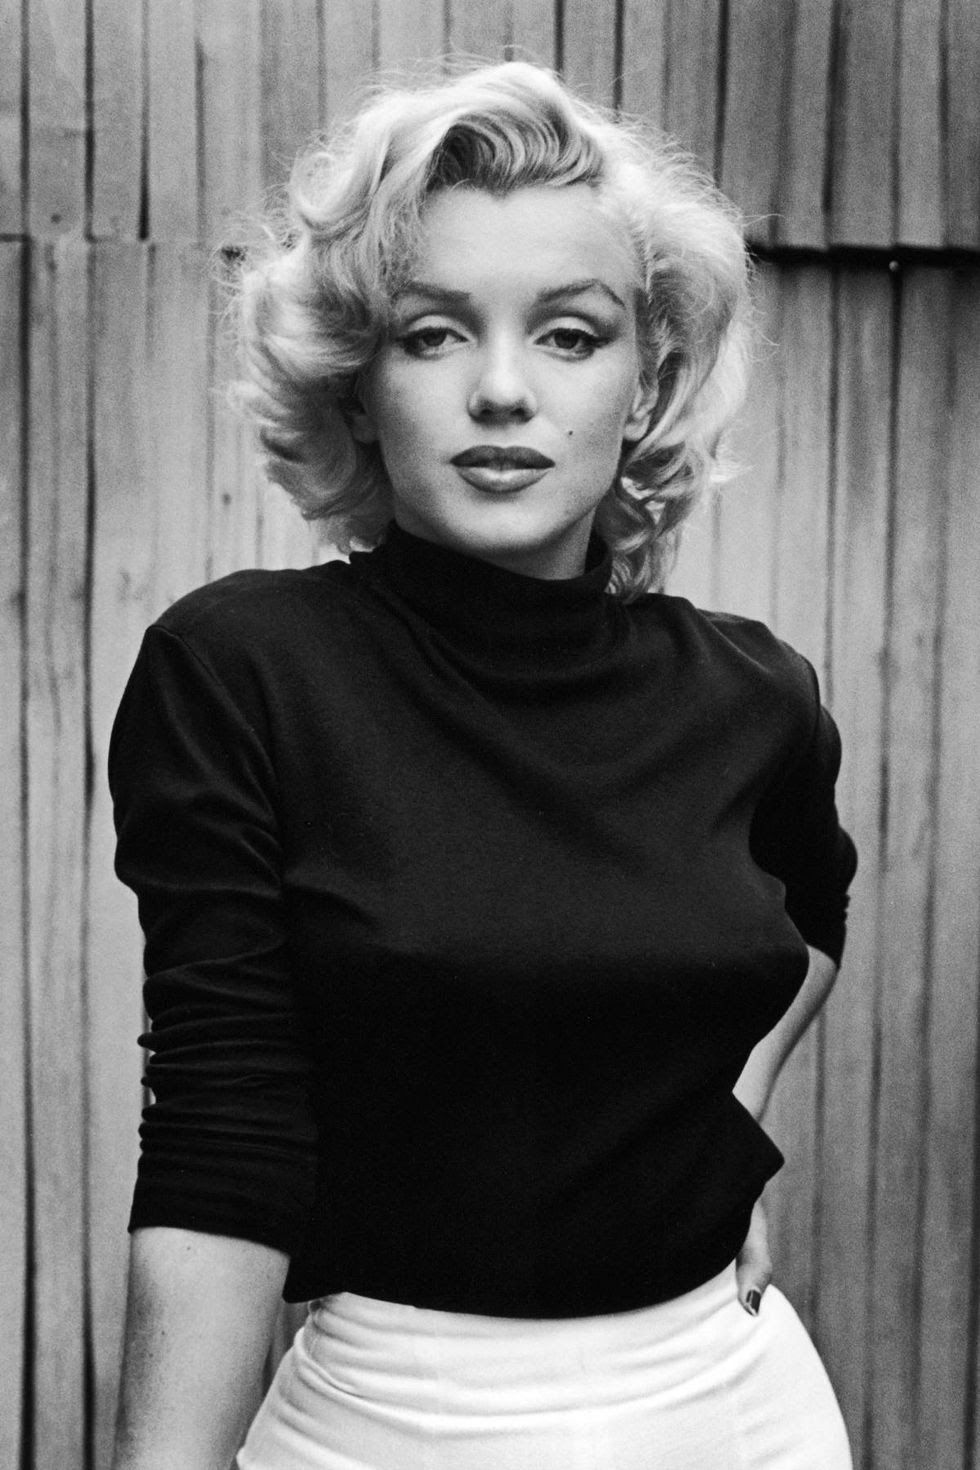 15 Rare Photos of Marilyn Monroe on Her 90thBirthday